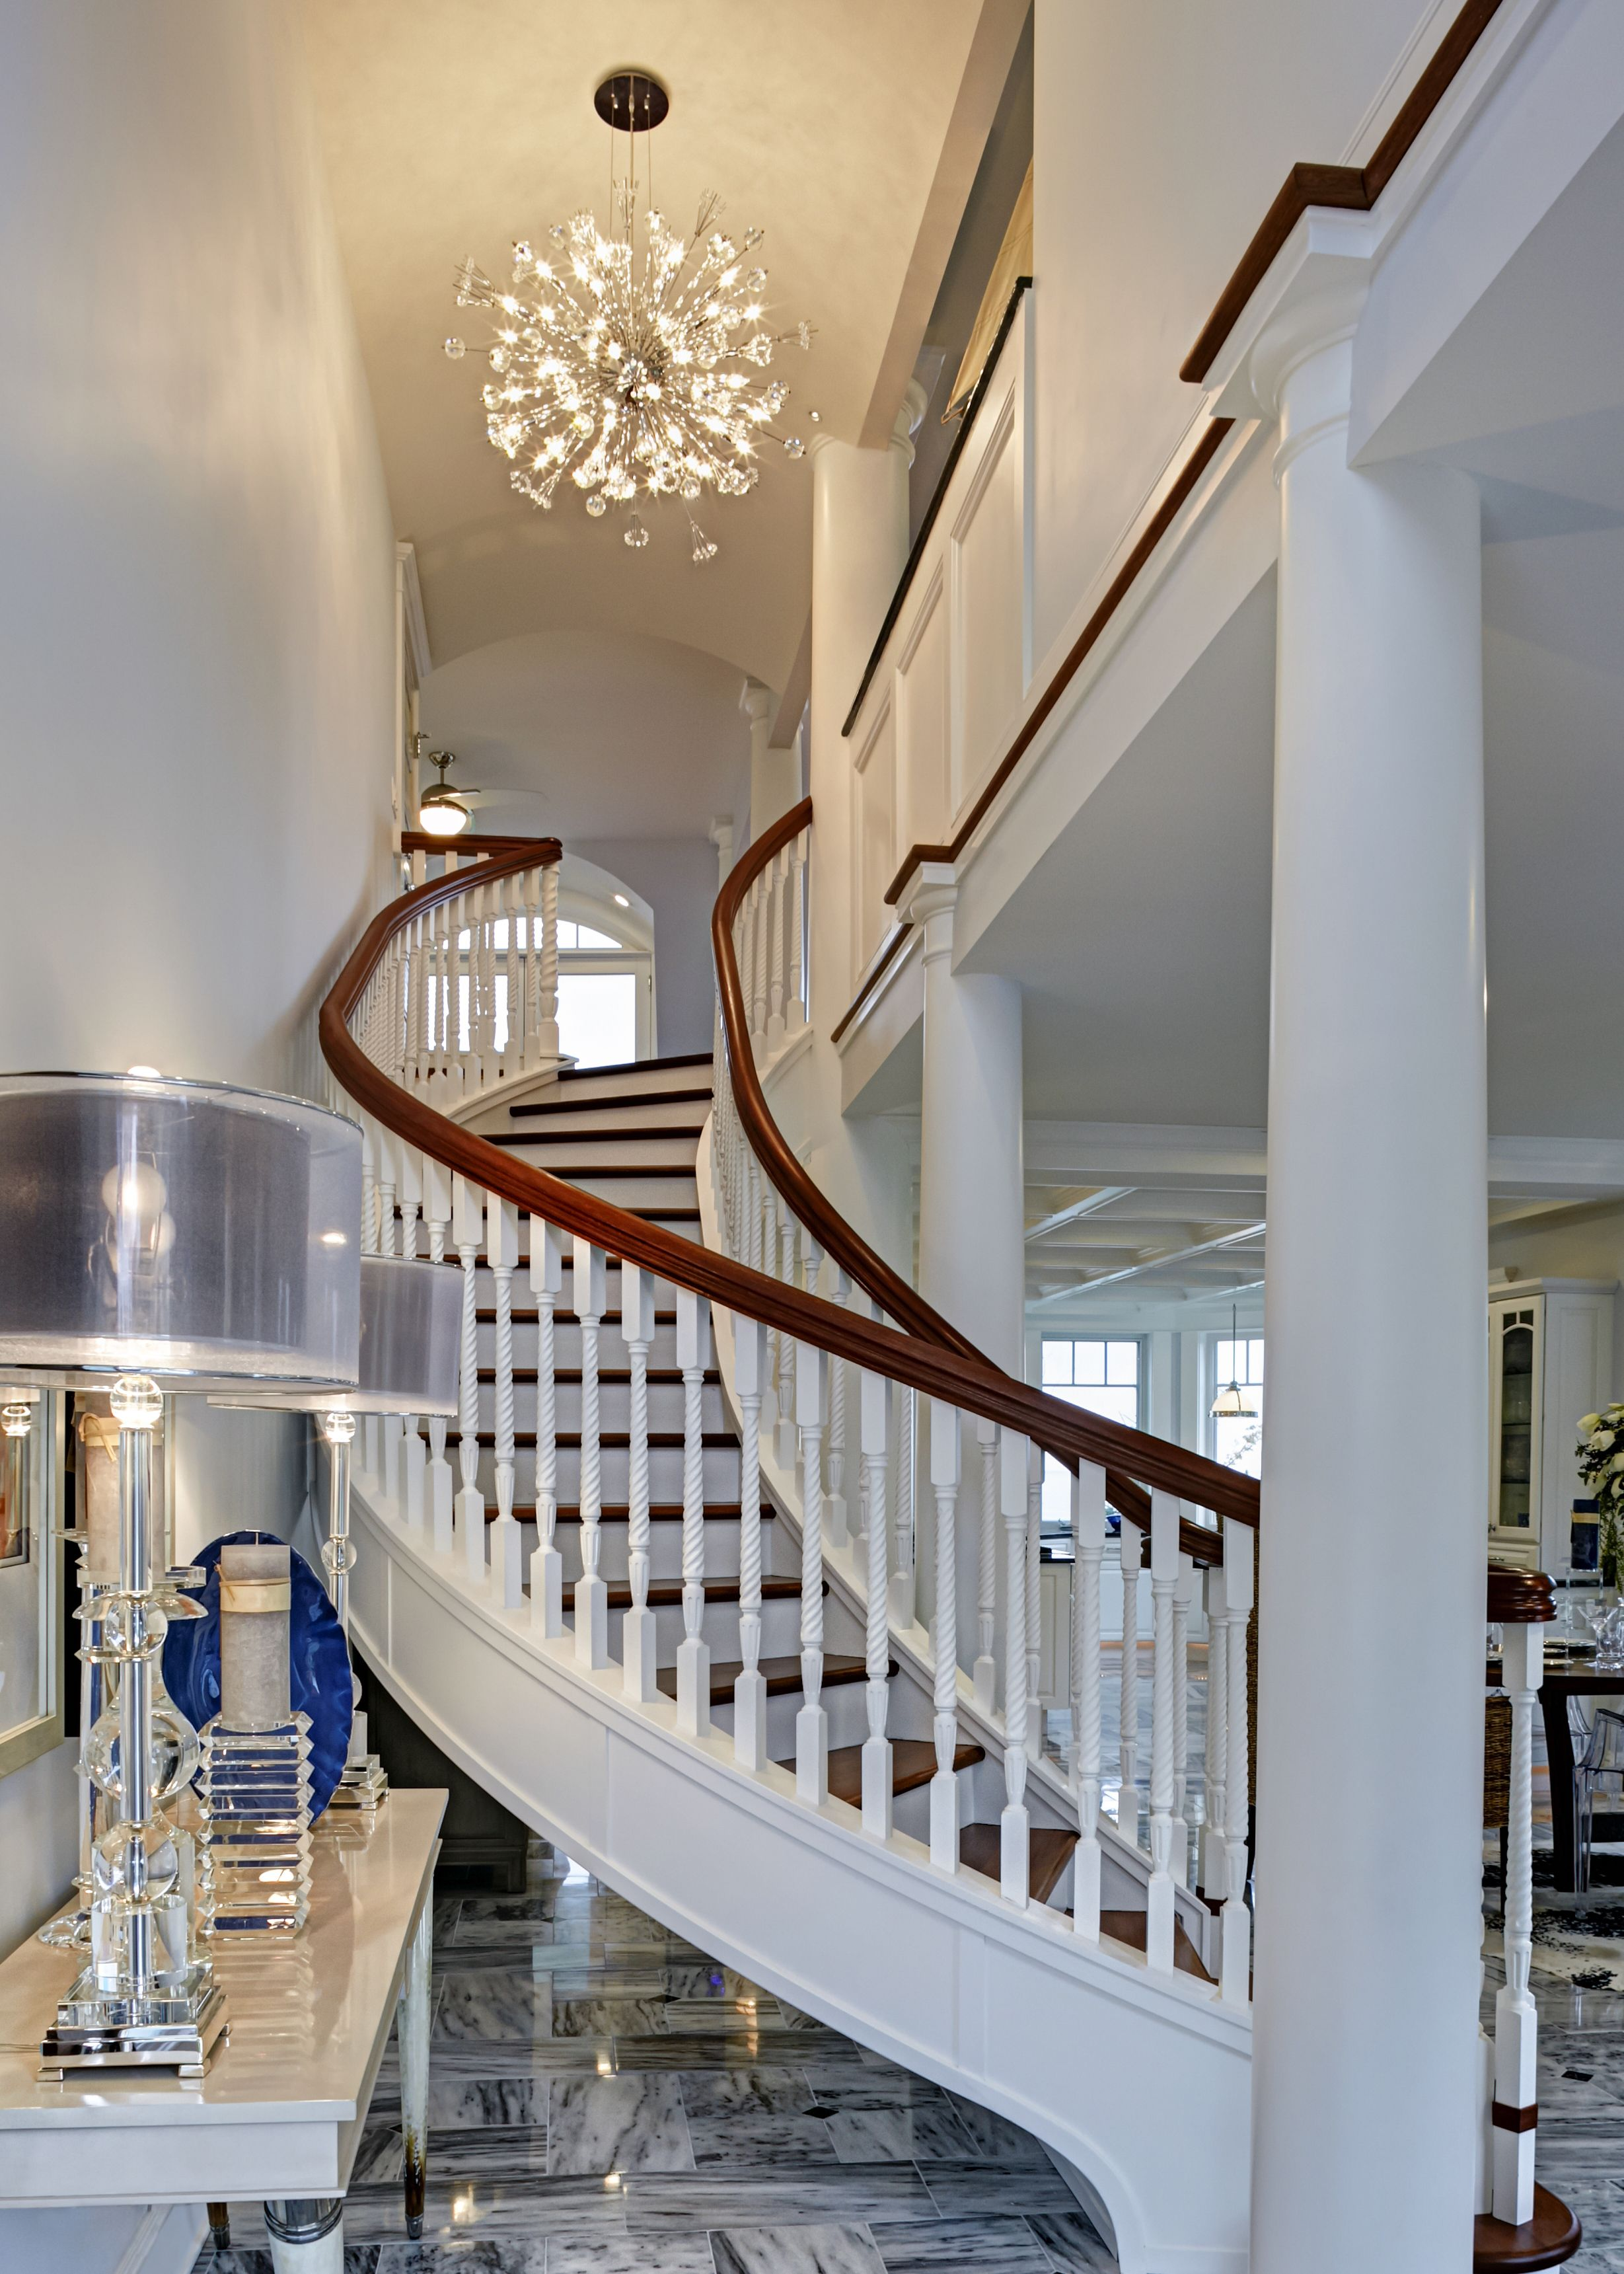 Home interior stairs a stunning curved floating stairwell of african mahogany was hand